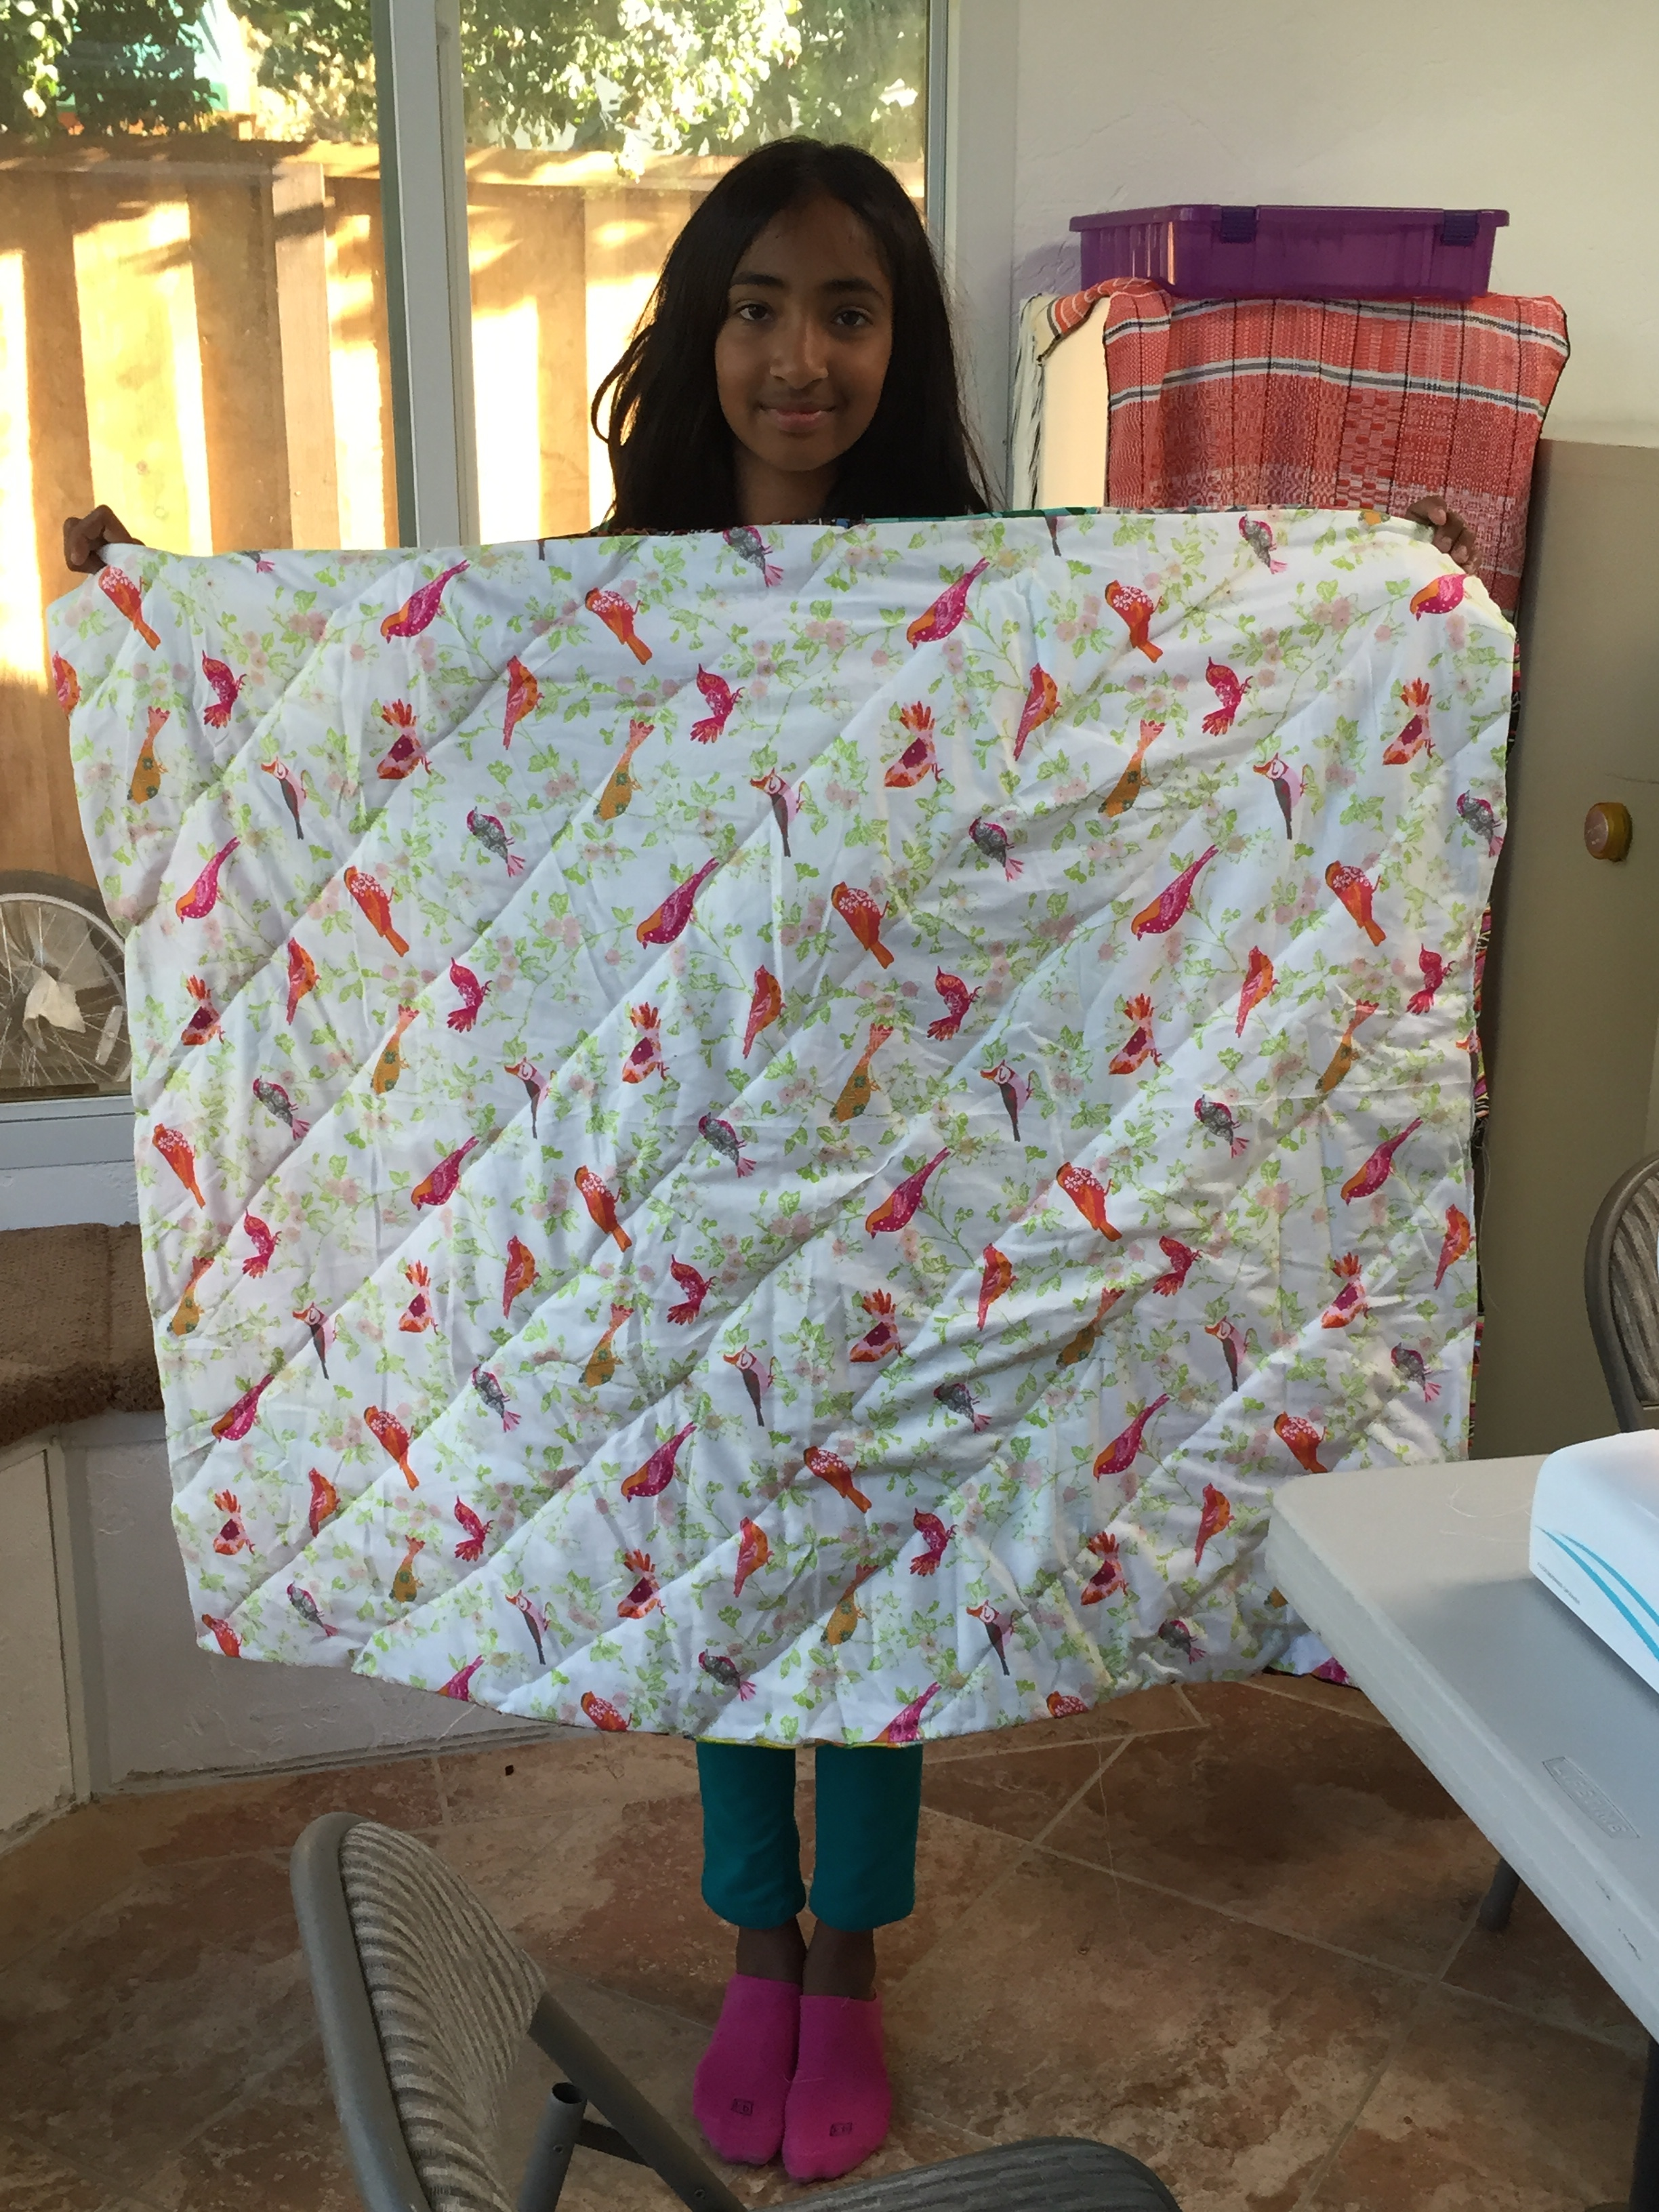 The back shows how this was quilted.